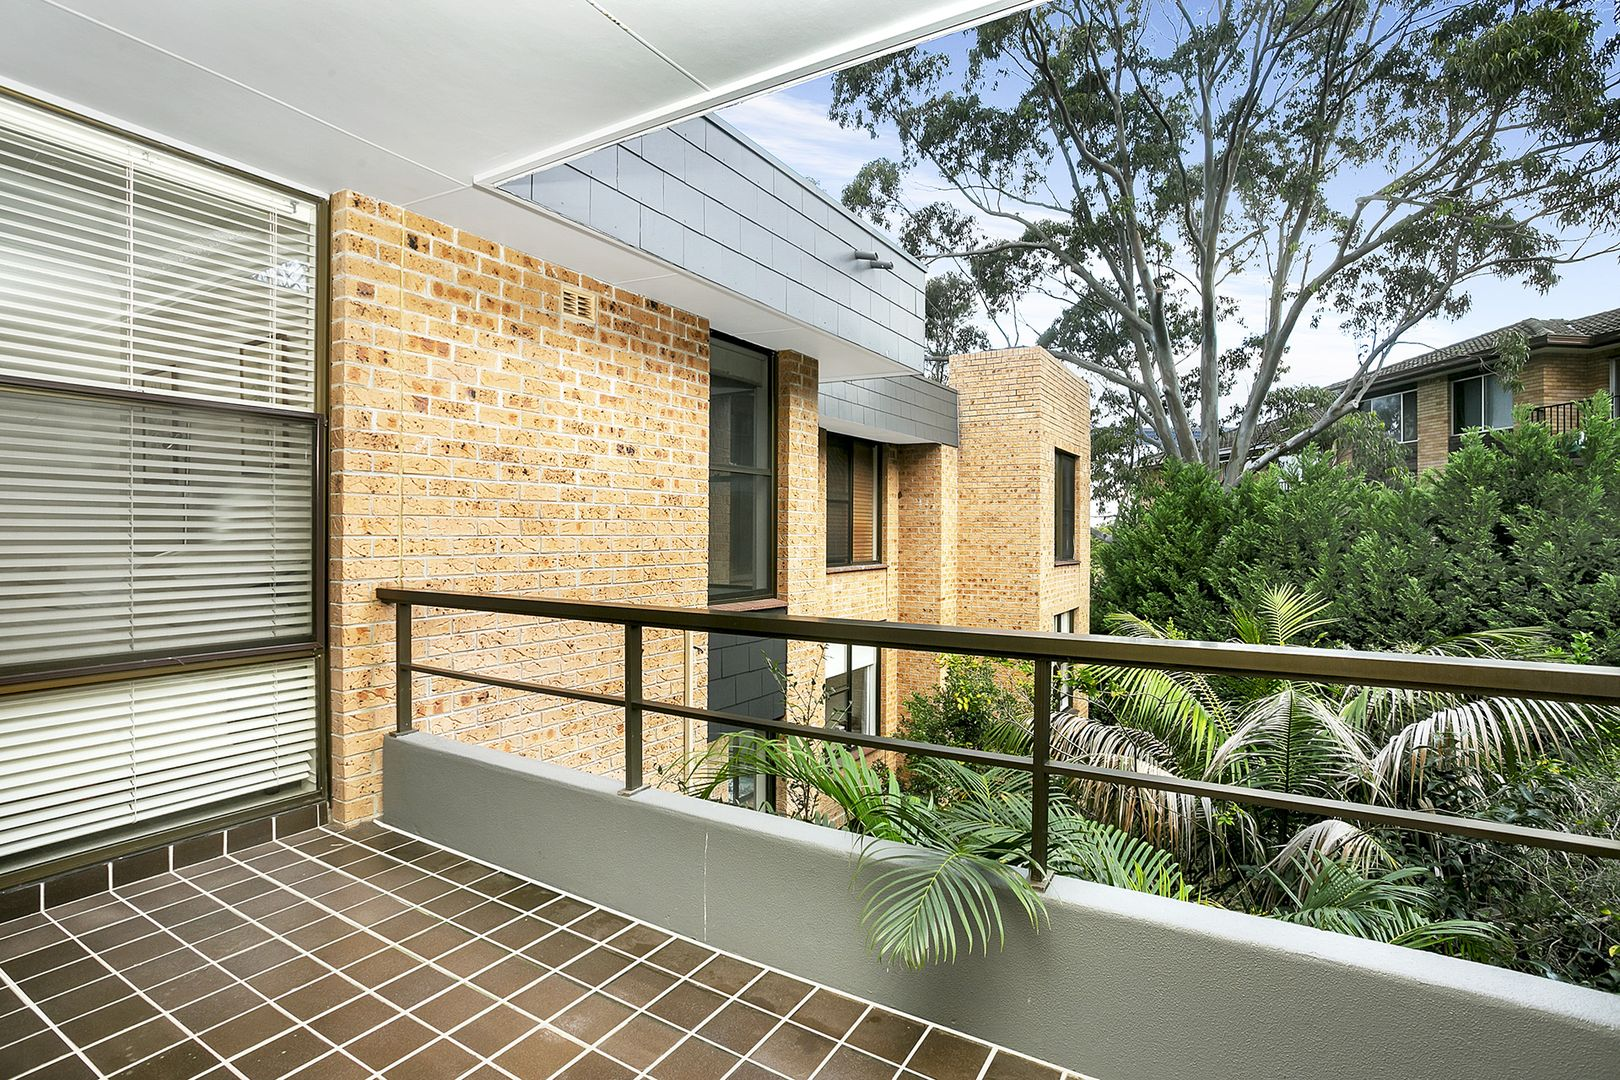 13/64-70 Spofforth Street, Cremorne NSW 2090, Image 2